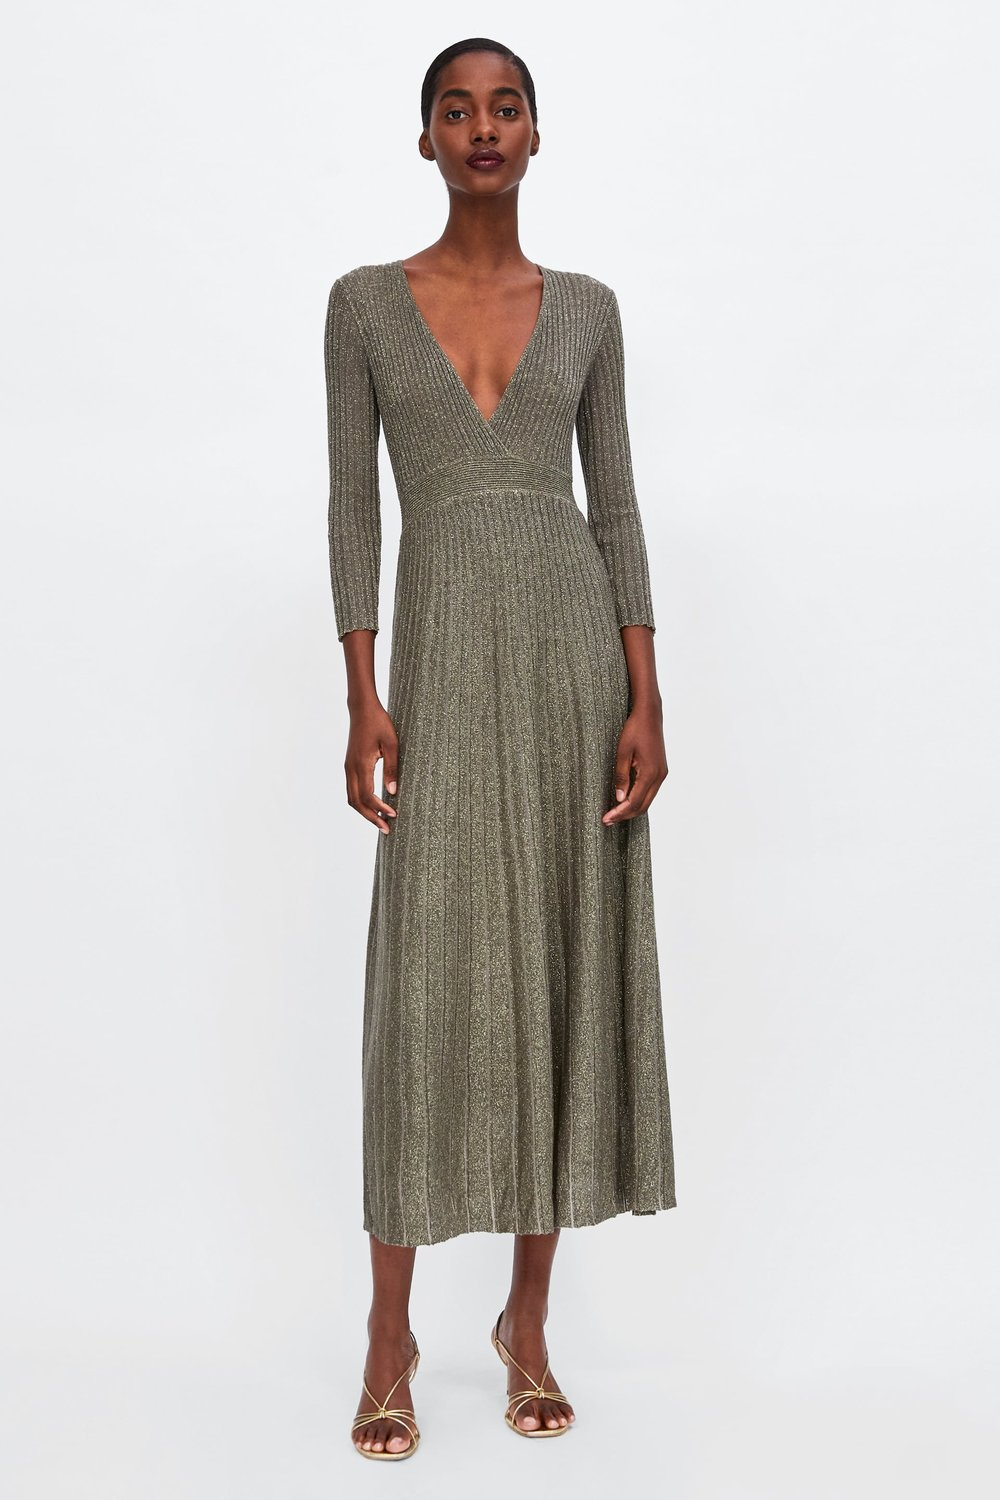 https://www.zara.com/ca/en/knit-dress-with-metallic-thread-p09874105.html?v1=6453920&v2=1074540